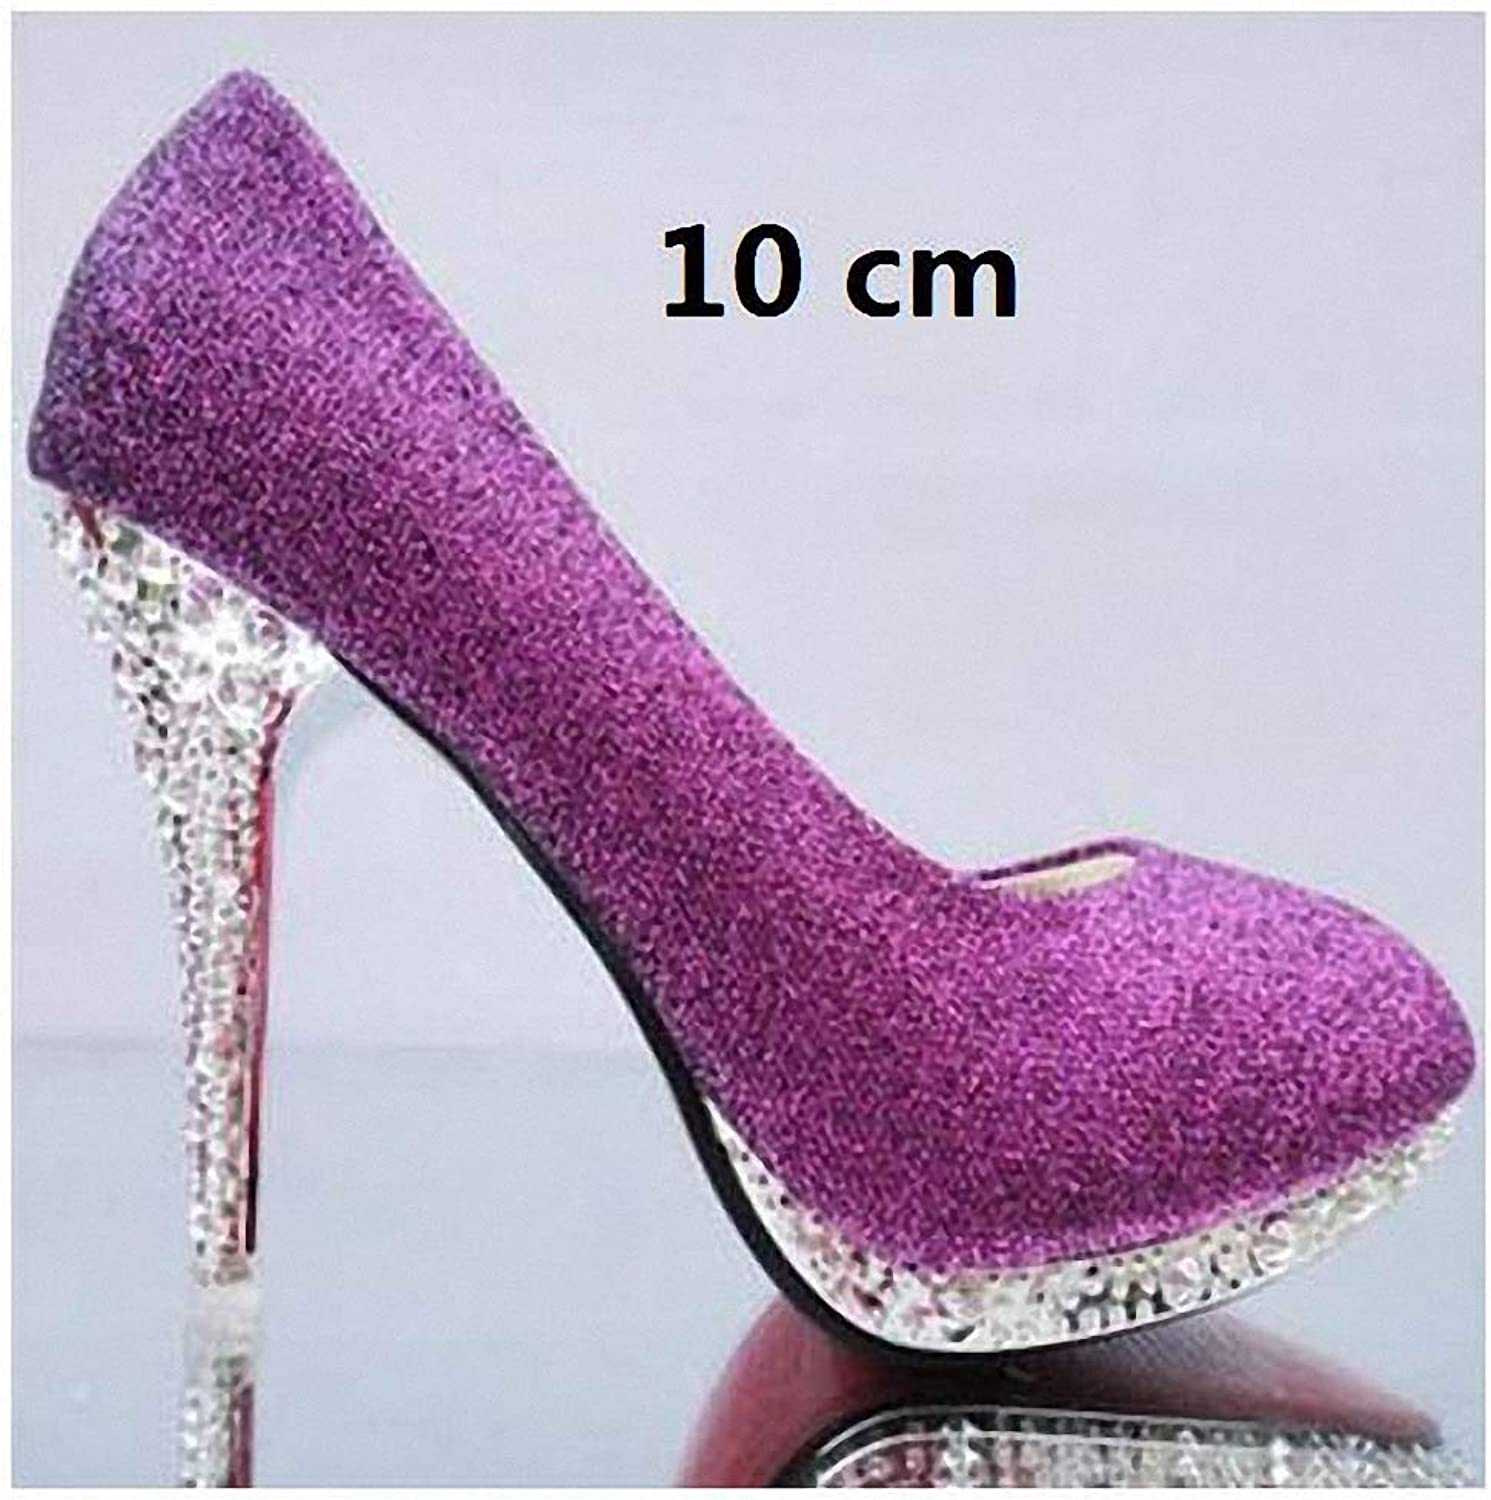 Tebapi Womens High-Heeled Pumps shoes Crystal Women's Wedding shoes Woman Bridal Evening Party Red High Heels shoes Sexy Women Pumps Glitter White Bridal shoes